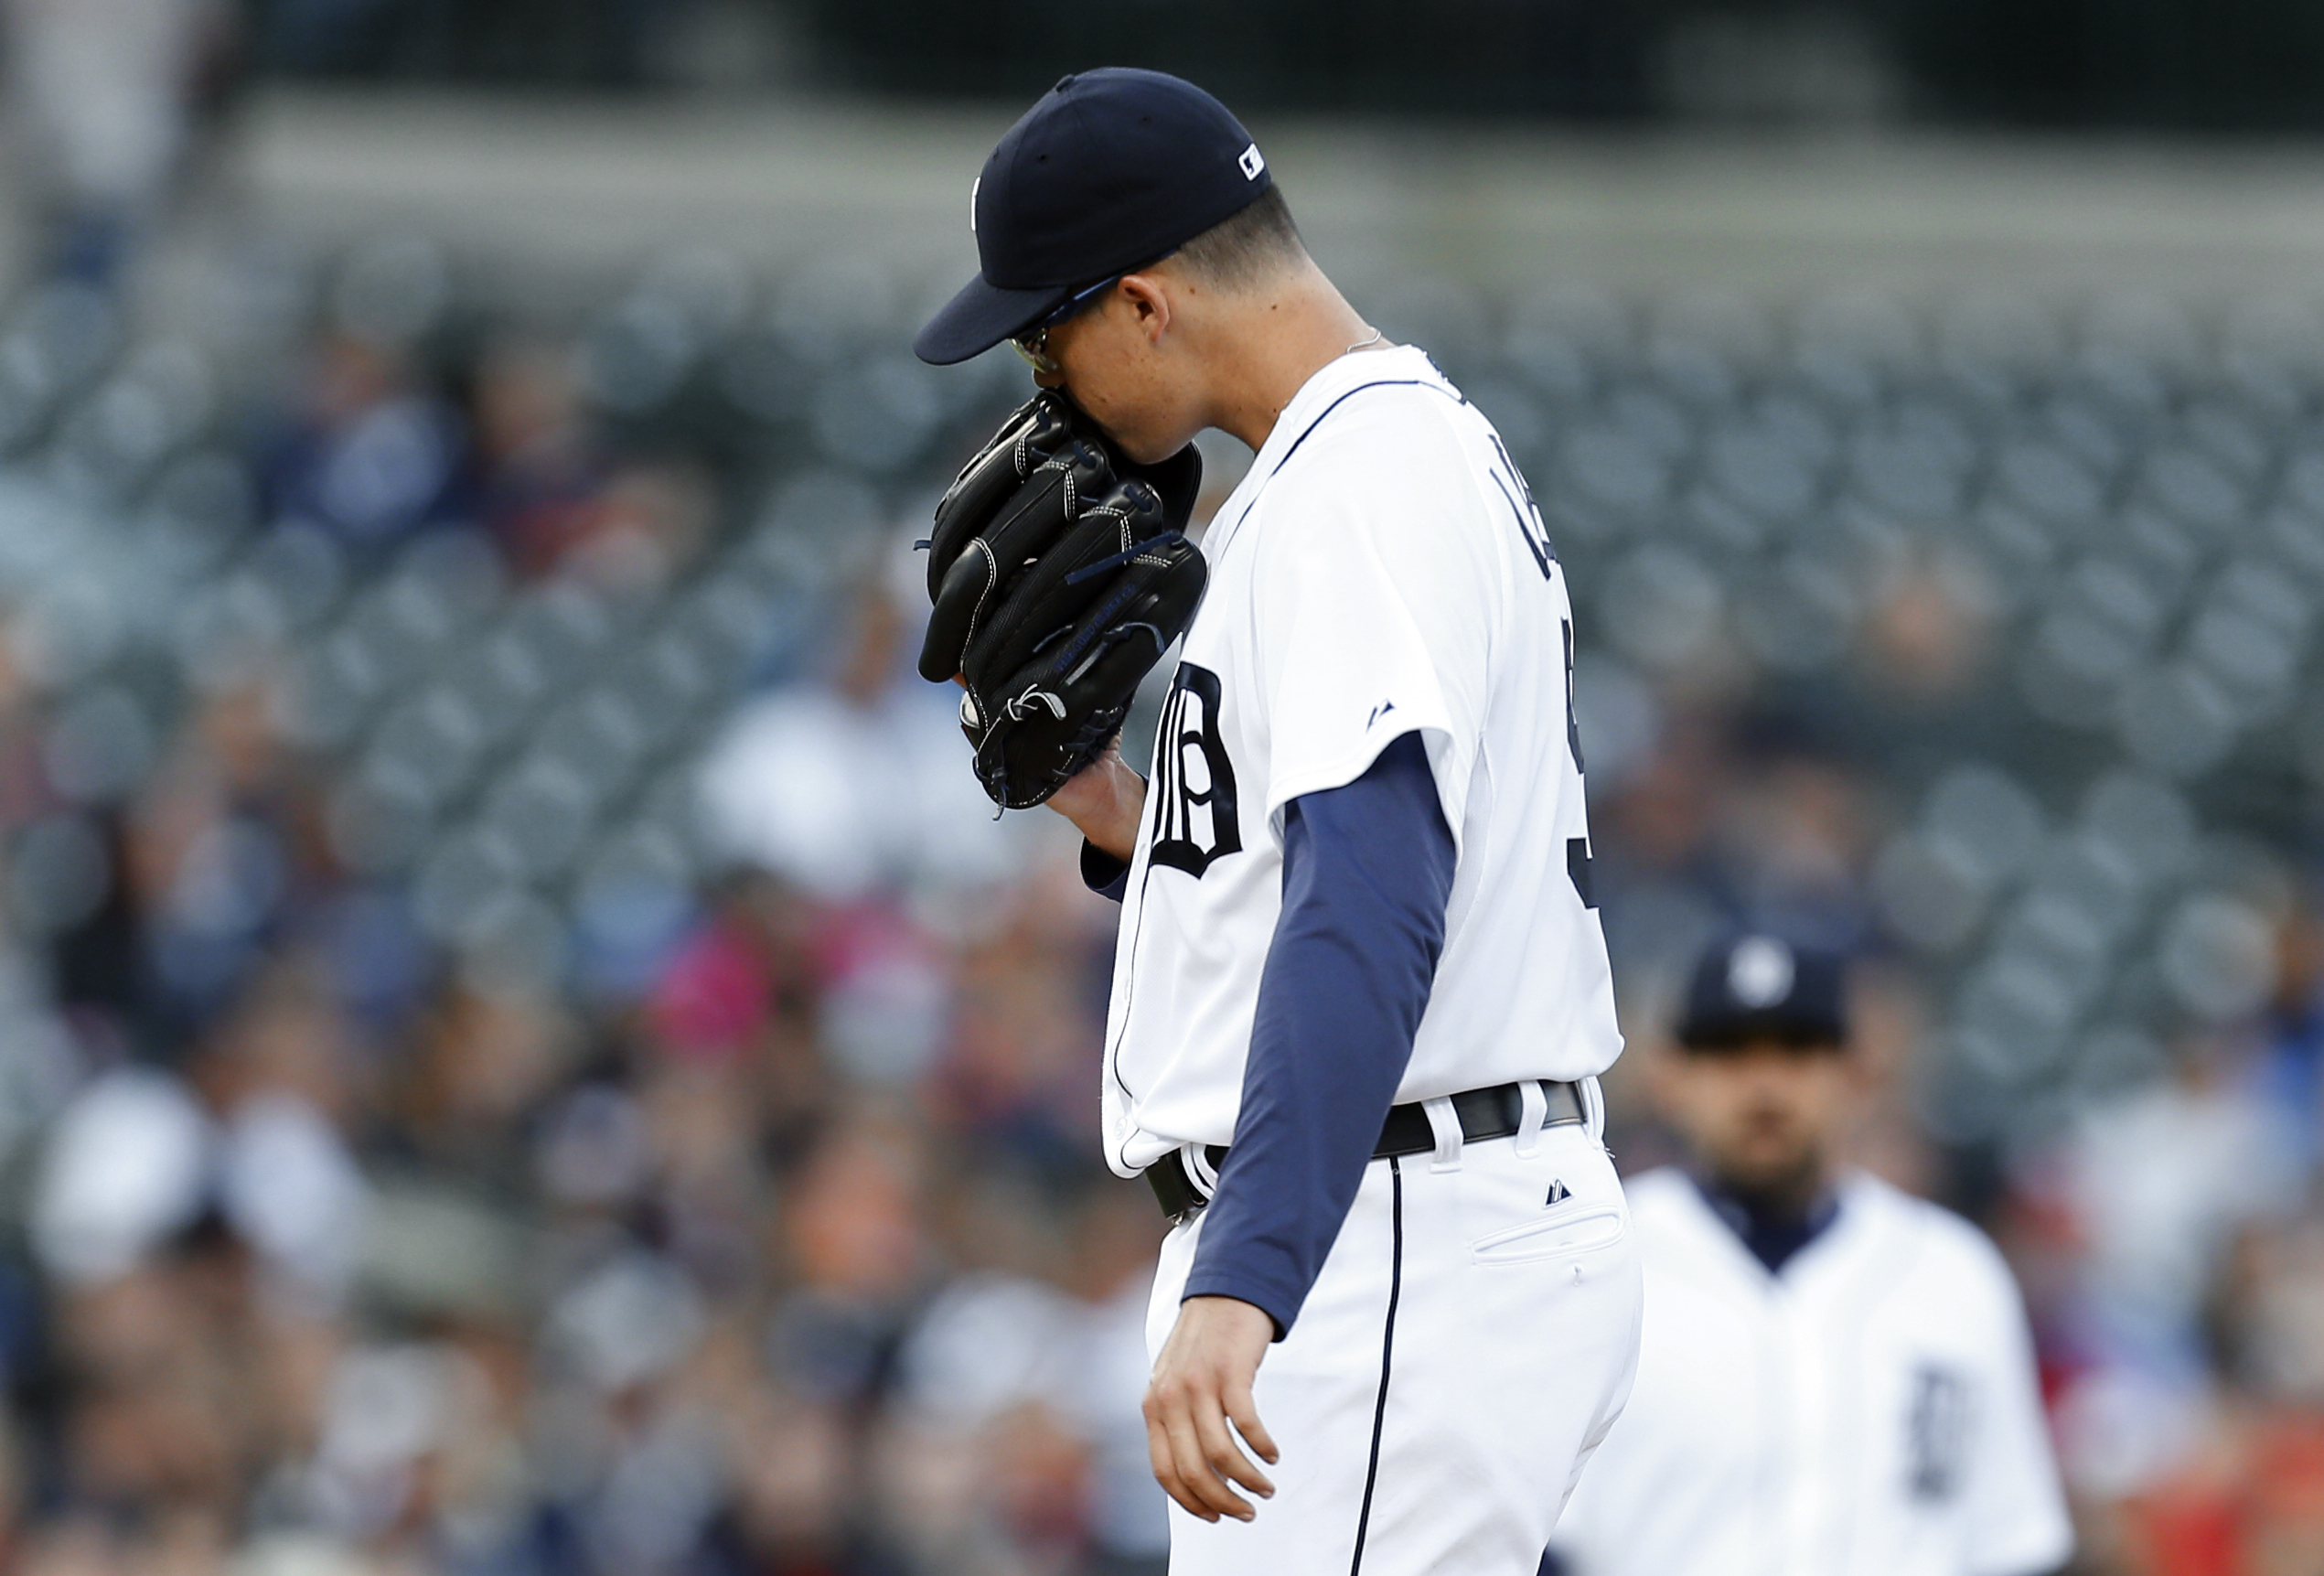 Detroit Tigers pitcher Kyle Lobstein reacts to seeing manager Brad Ausmus headed to the mound, during the third inning of a baseball game against the Minnesota Twins in Detroit on Wednesday, May 13, 2015. (AP Photo/Paul Sancya)